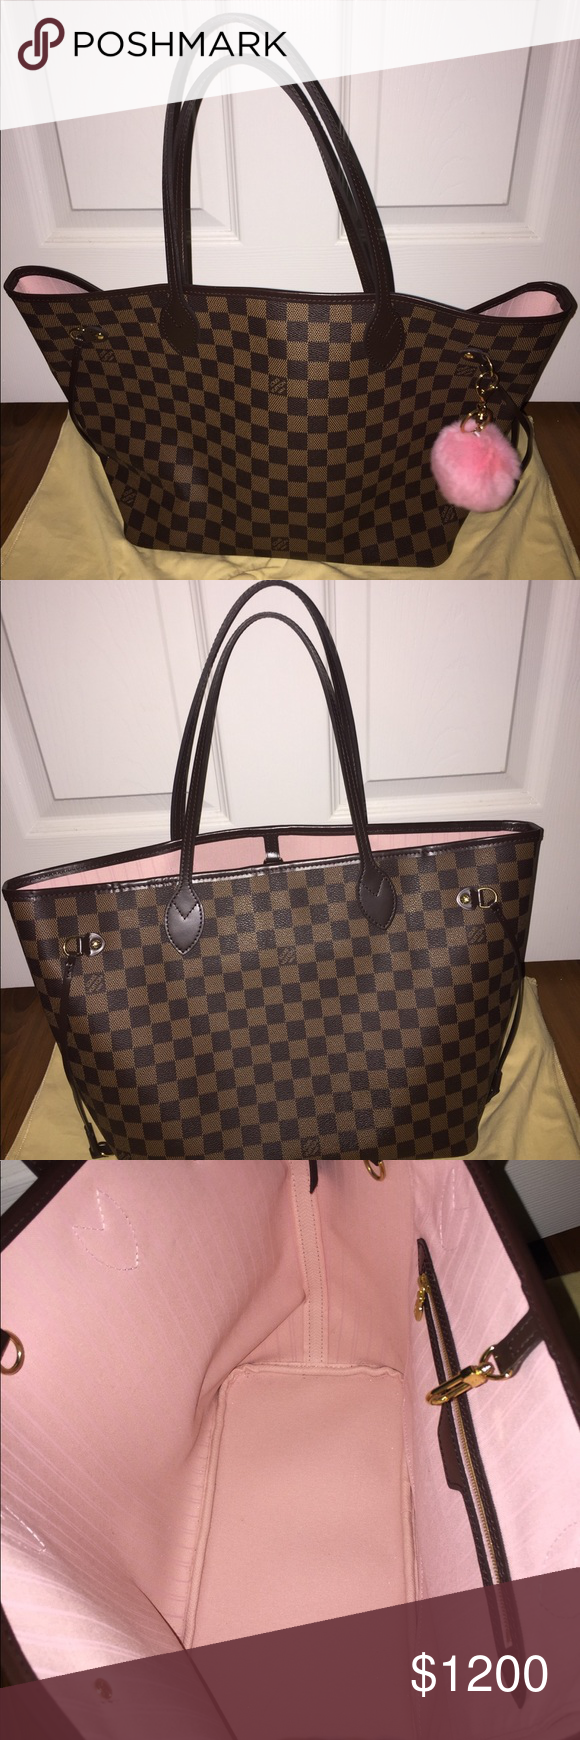 5aa408f1472b Authentic Louis Vuitton Neverfull MM 💯 Authentic Louis Vuitton Neverfull MM  RB in the ebene print